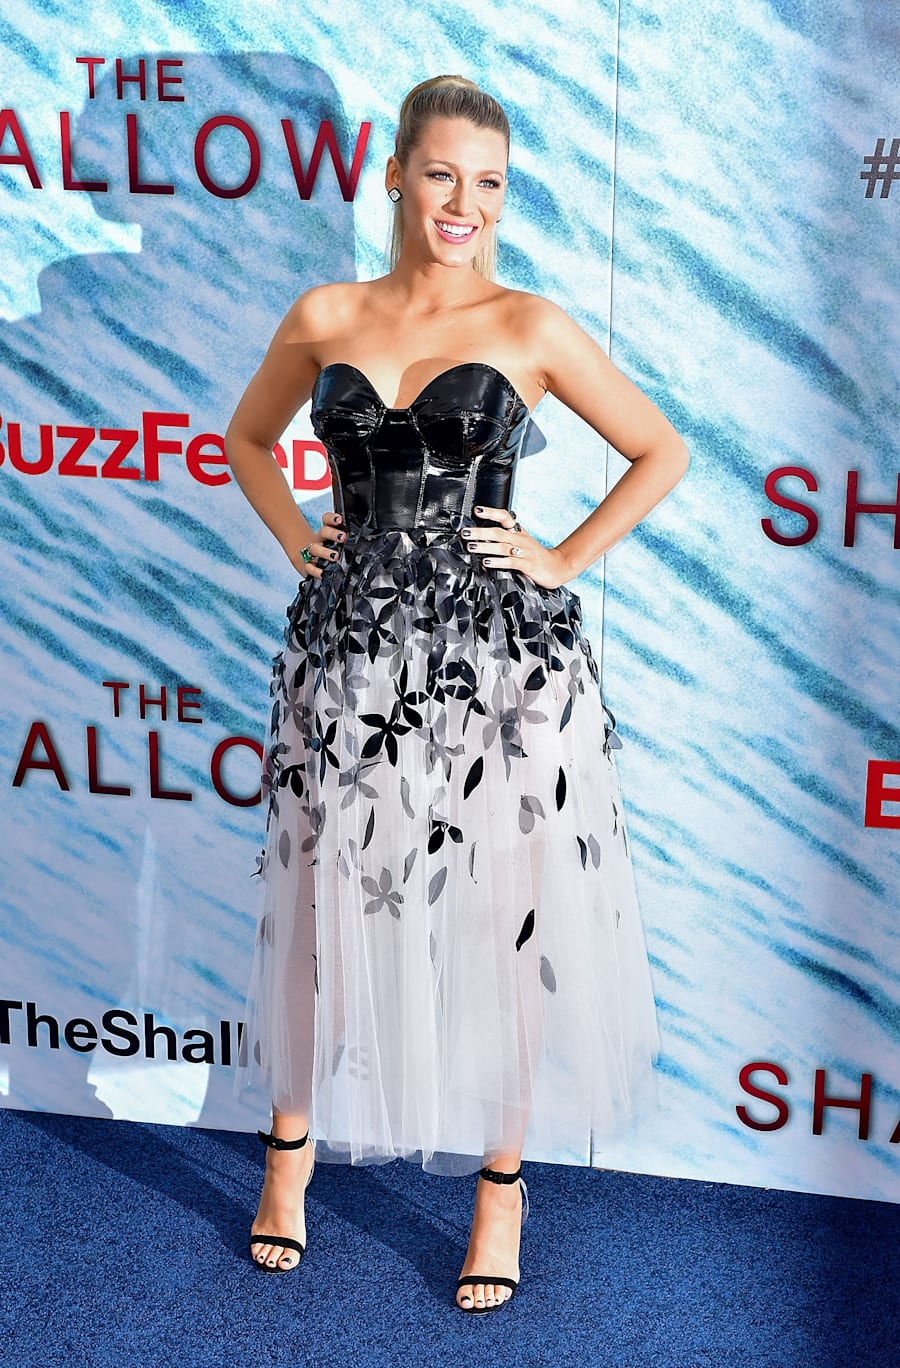 A day earlier she attended 'The Shallows' World Premiere in New York City. An S and M style latex bodice...